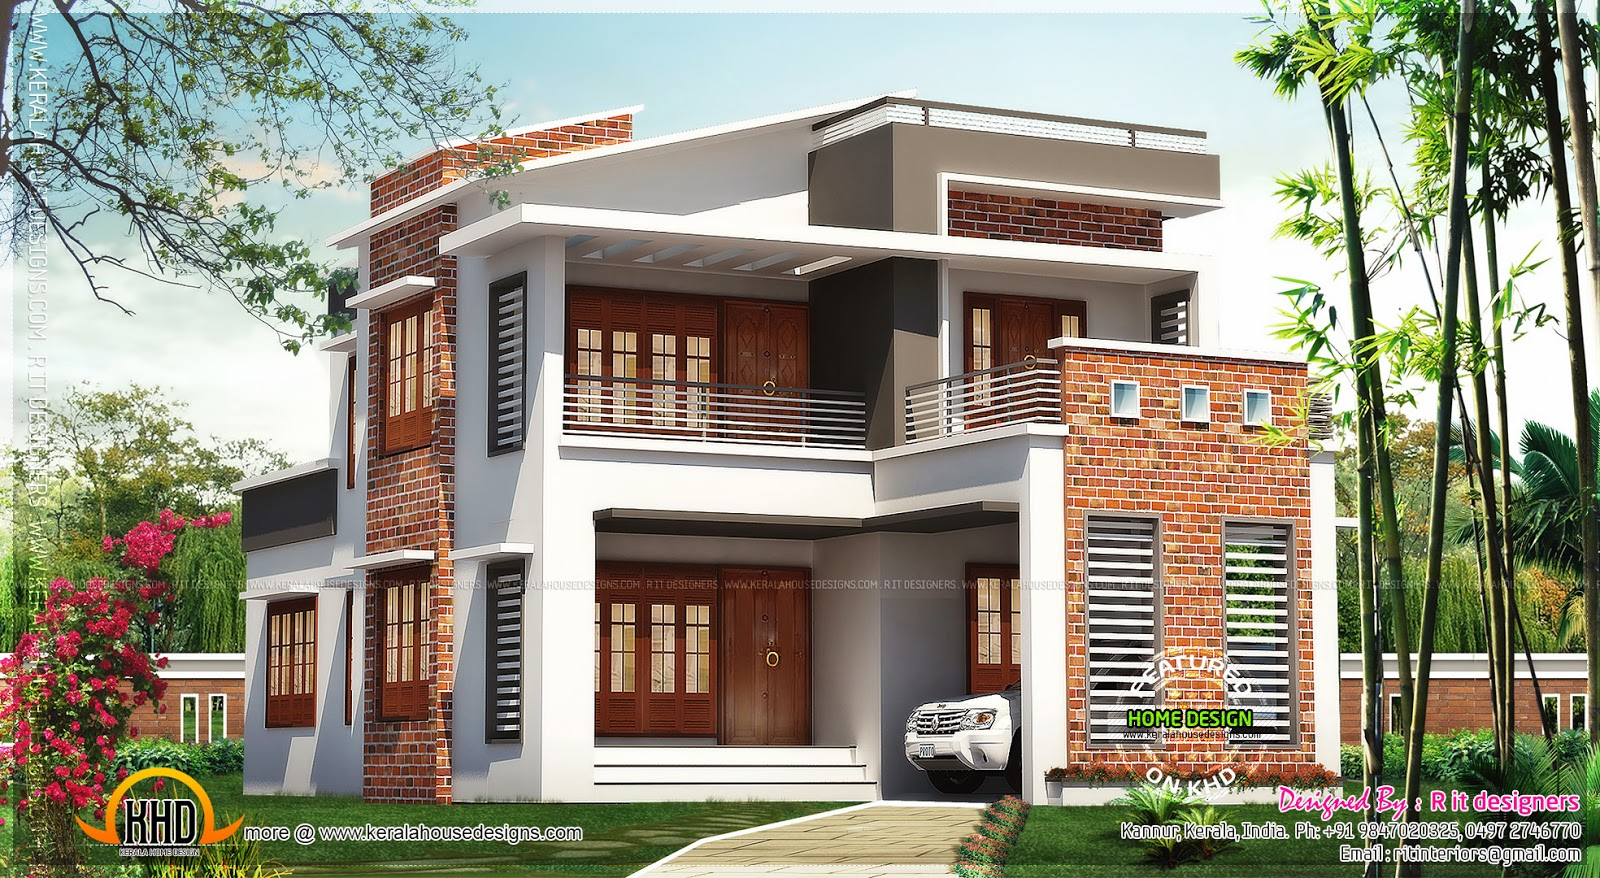 Brick mix house exterior design kerala home design and for House paint outside design